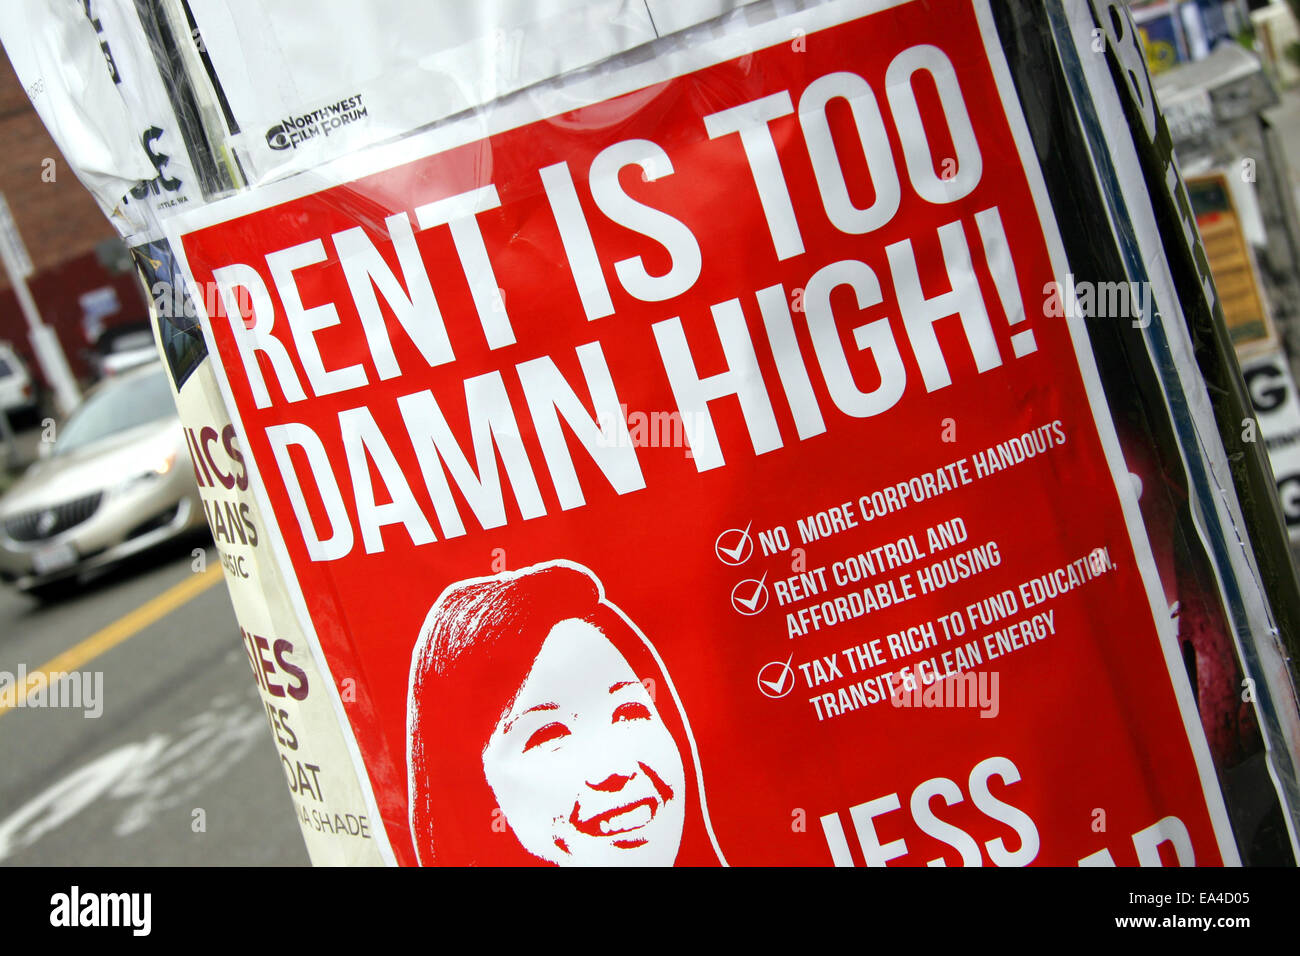 Rent is too damn high! Poster in Seattle, USA - Stock Image